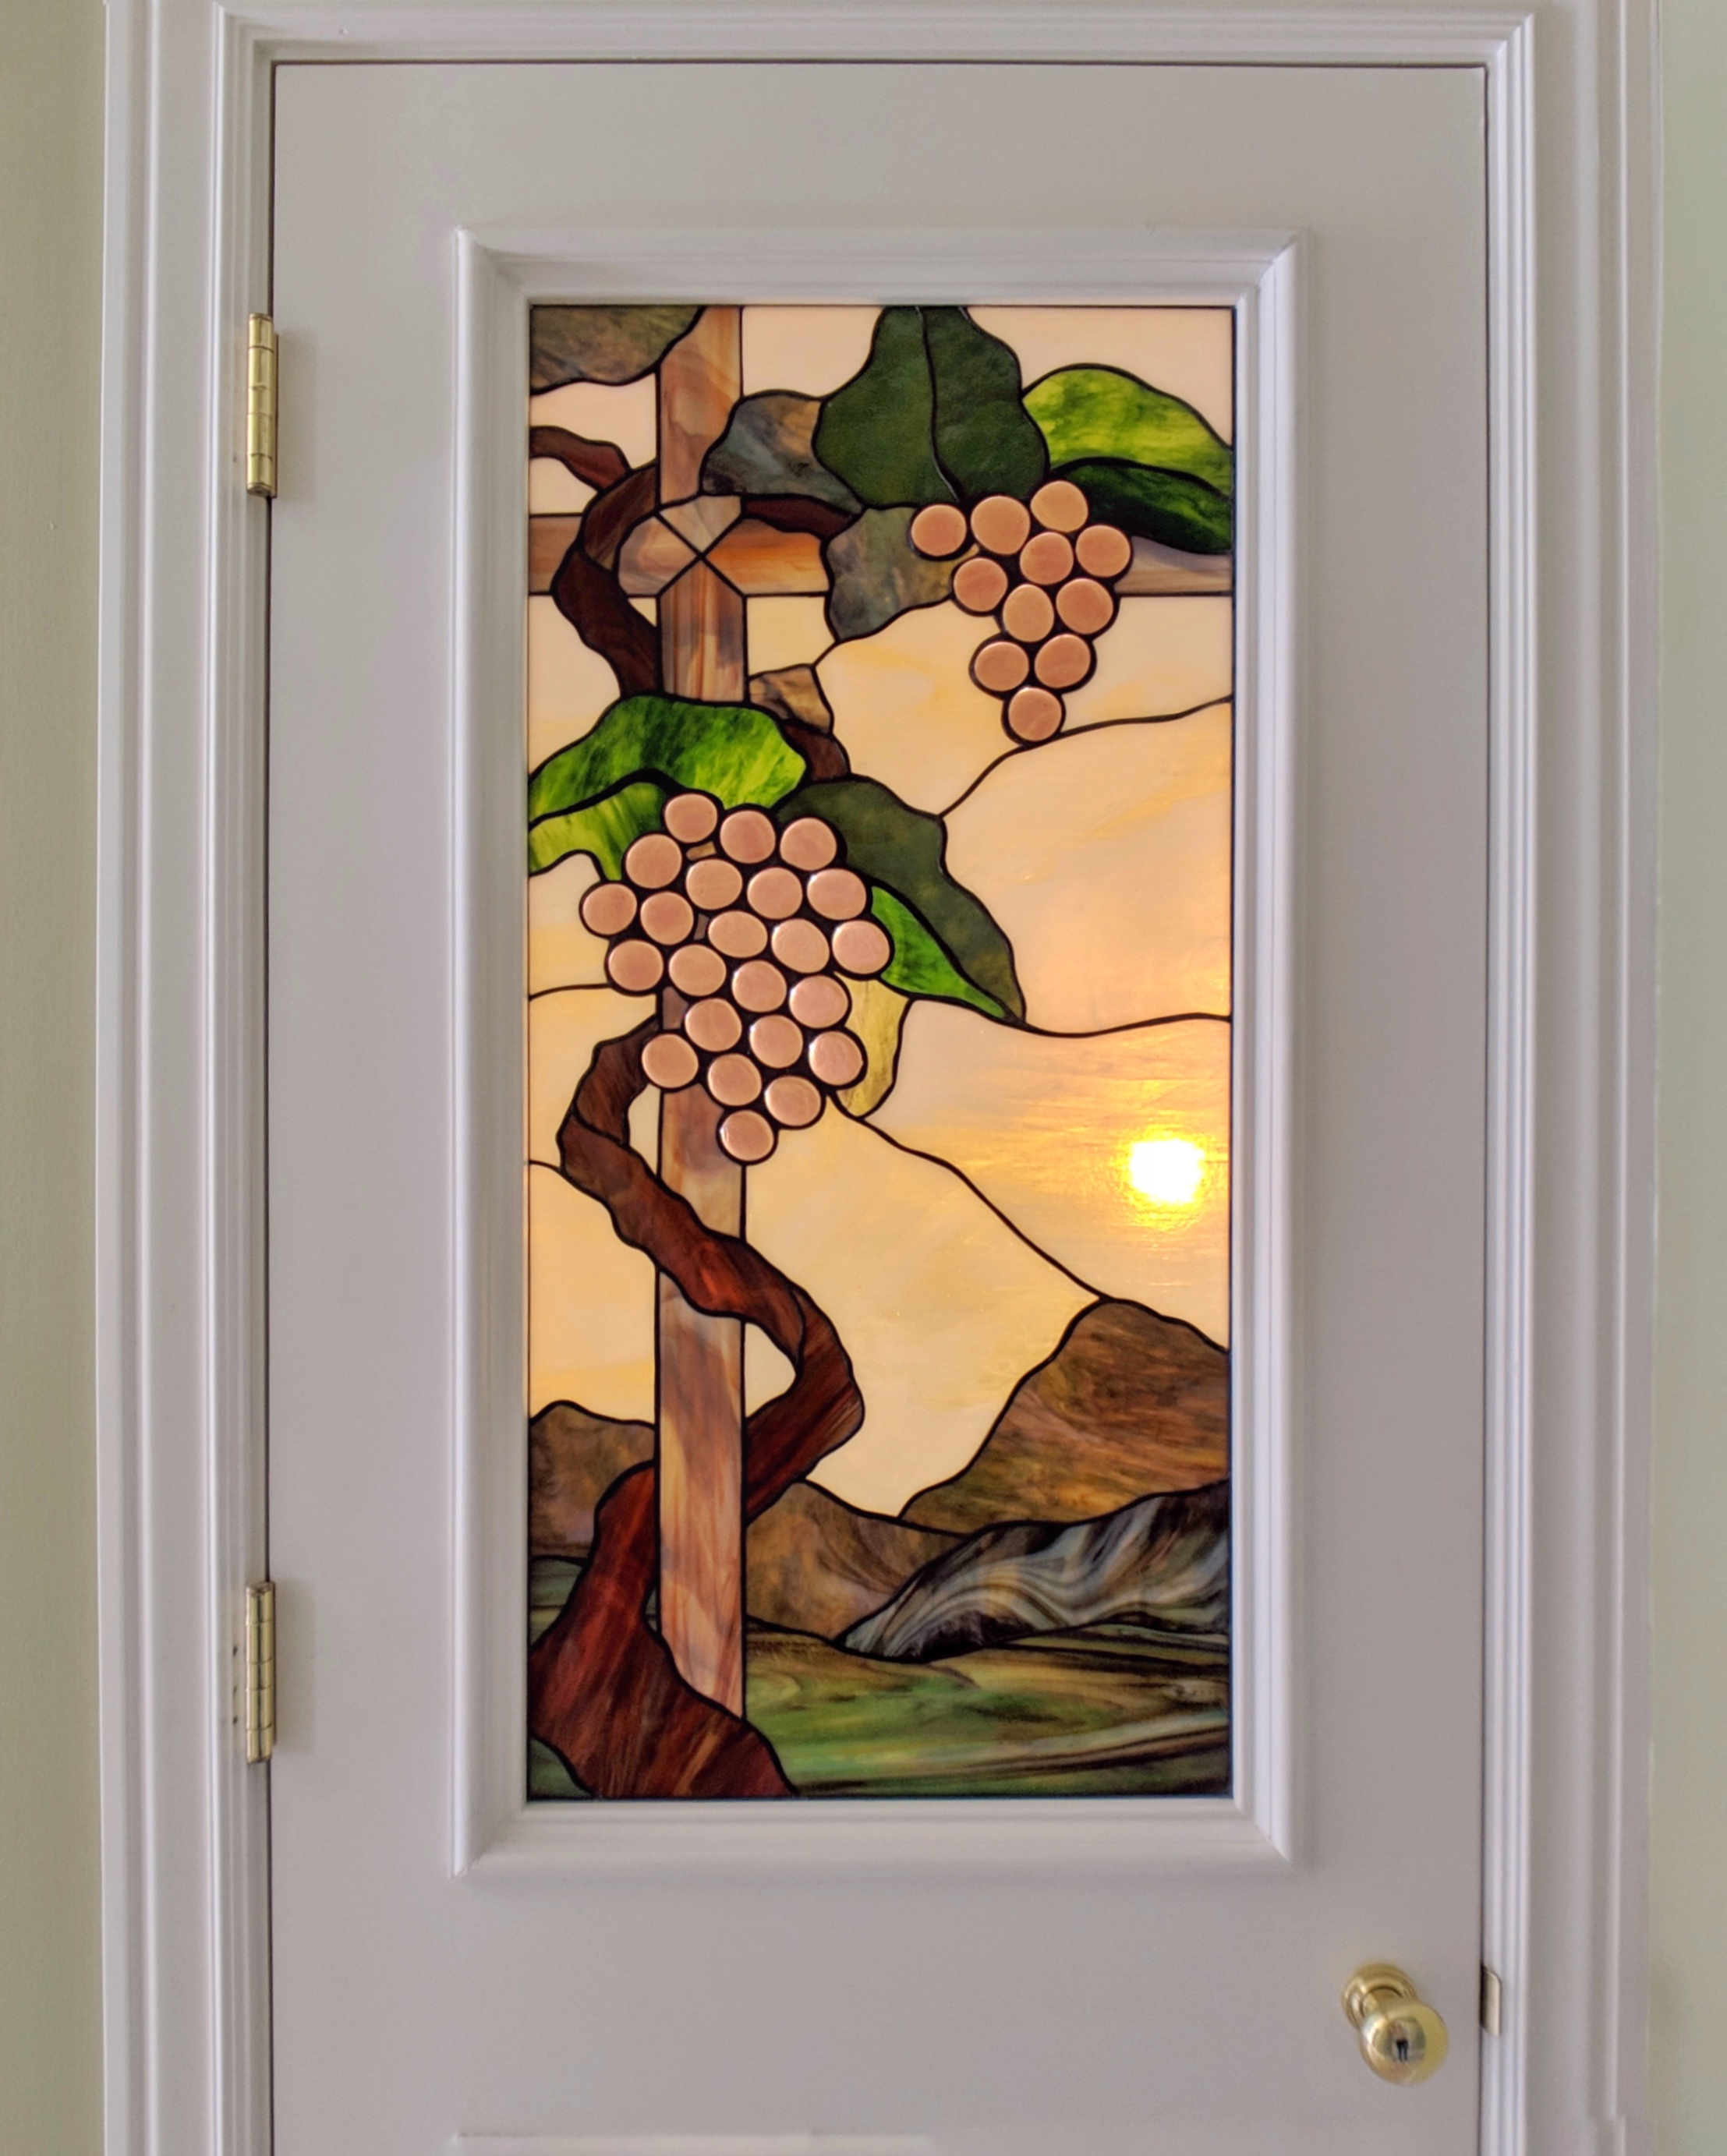 leaded glass stained glass san francisco art glass bay area custom design stained glass legacy glass studios design grapes vine landscape wine vineyard realistic copper foil opalescent glass.jpeg